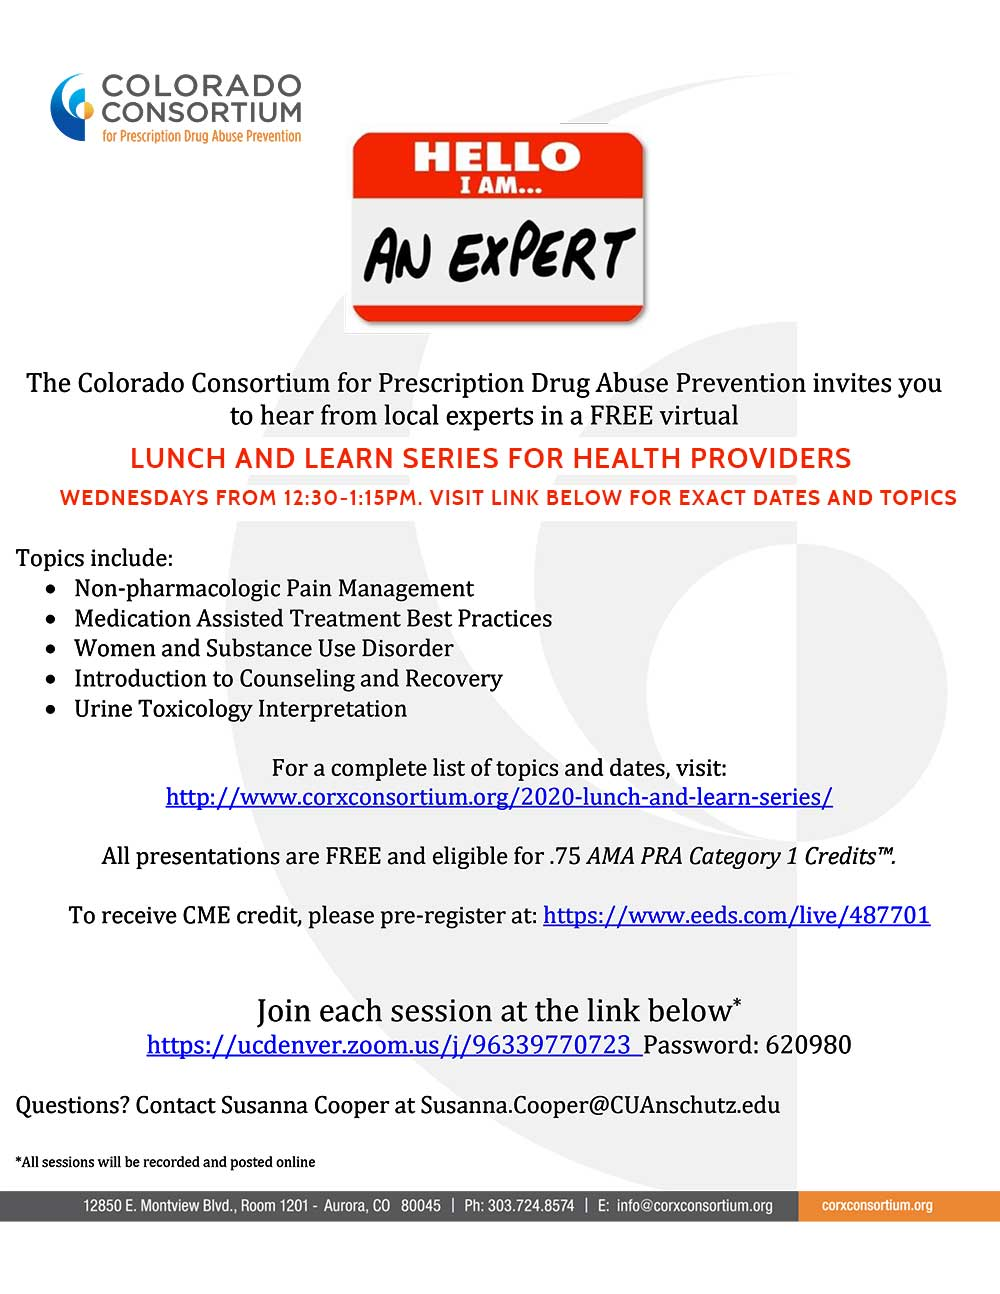 Consortium-Lunch-and-Learn-Flyer